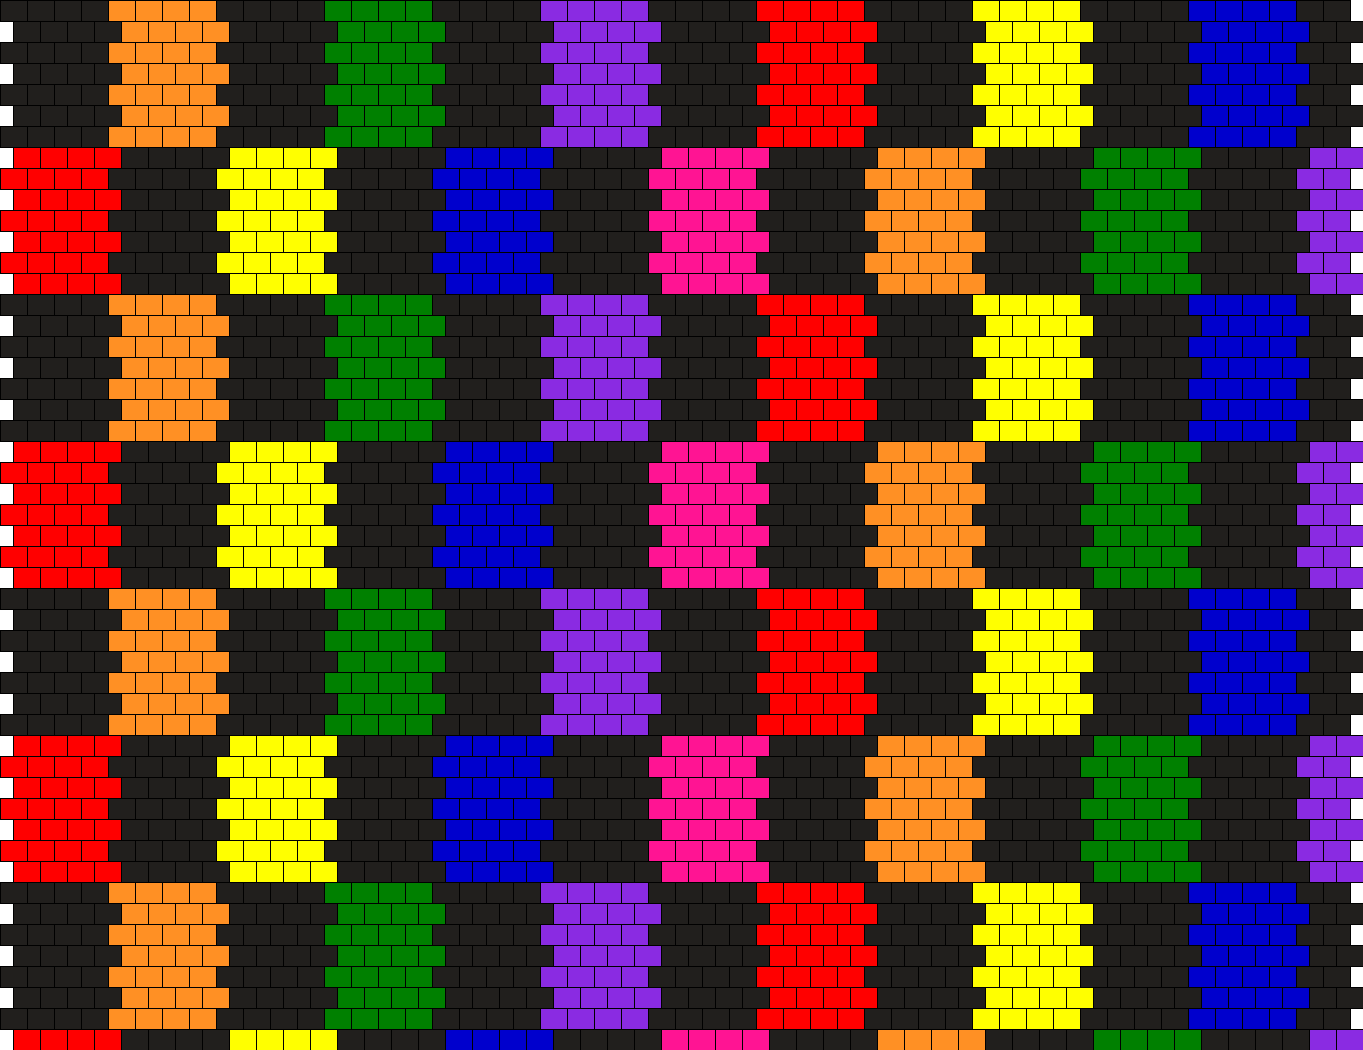 Rainbow_Checkers